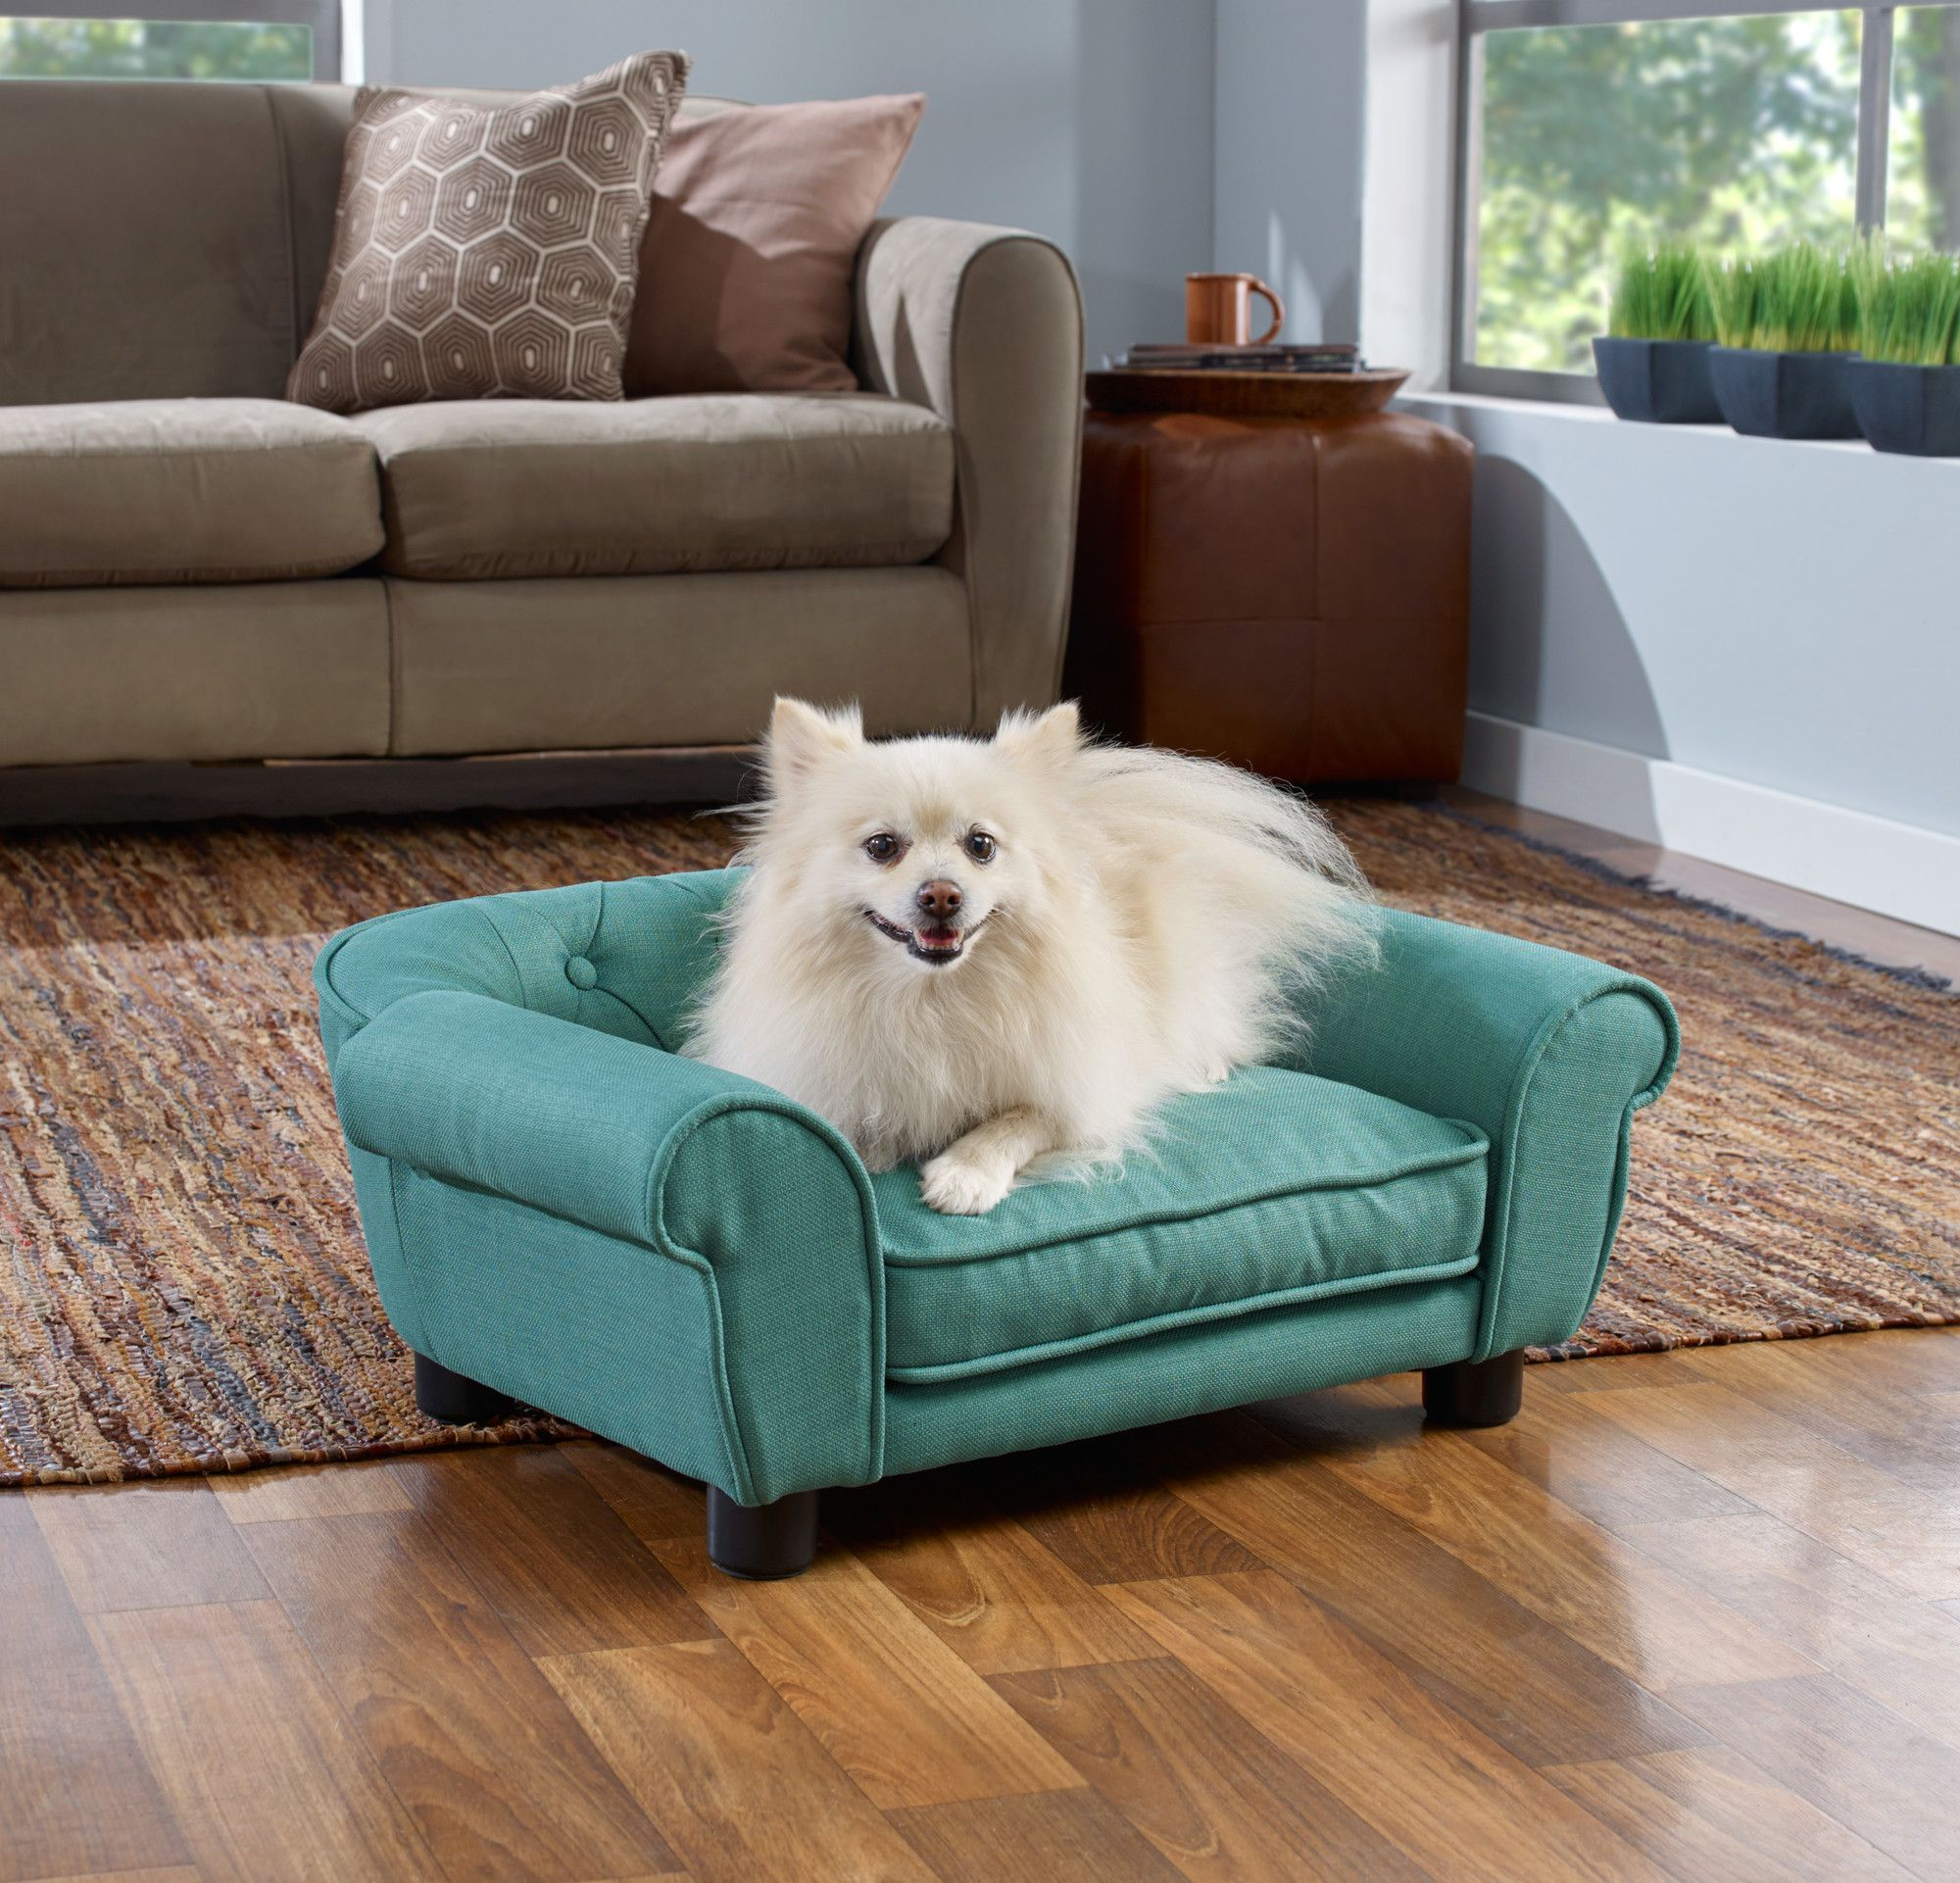 Features: -For removable cushion cover only. -Comfortably fits pets up to 10 & Features: -For removable cushion cover only. -Comfortably fits ... pillowsntoast.com